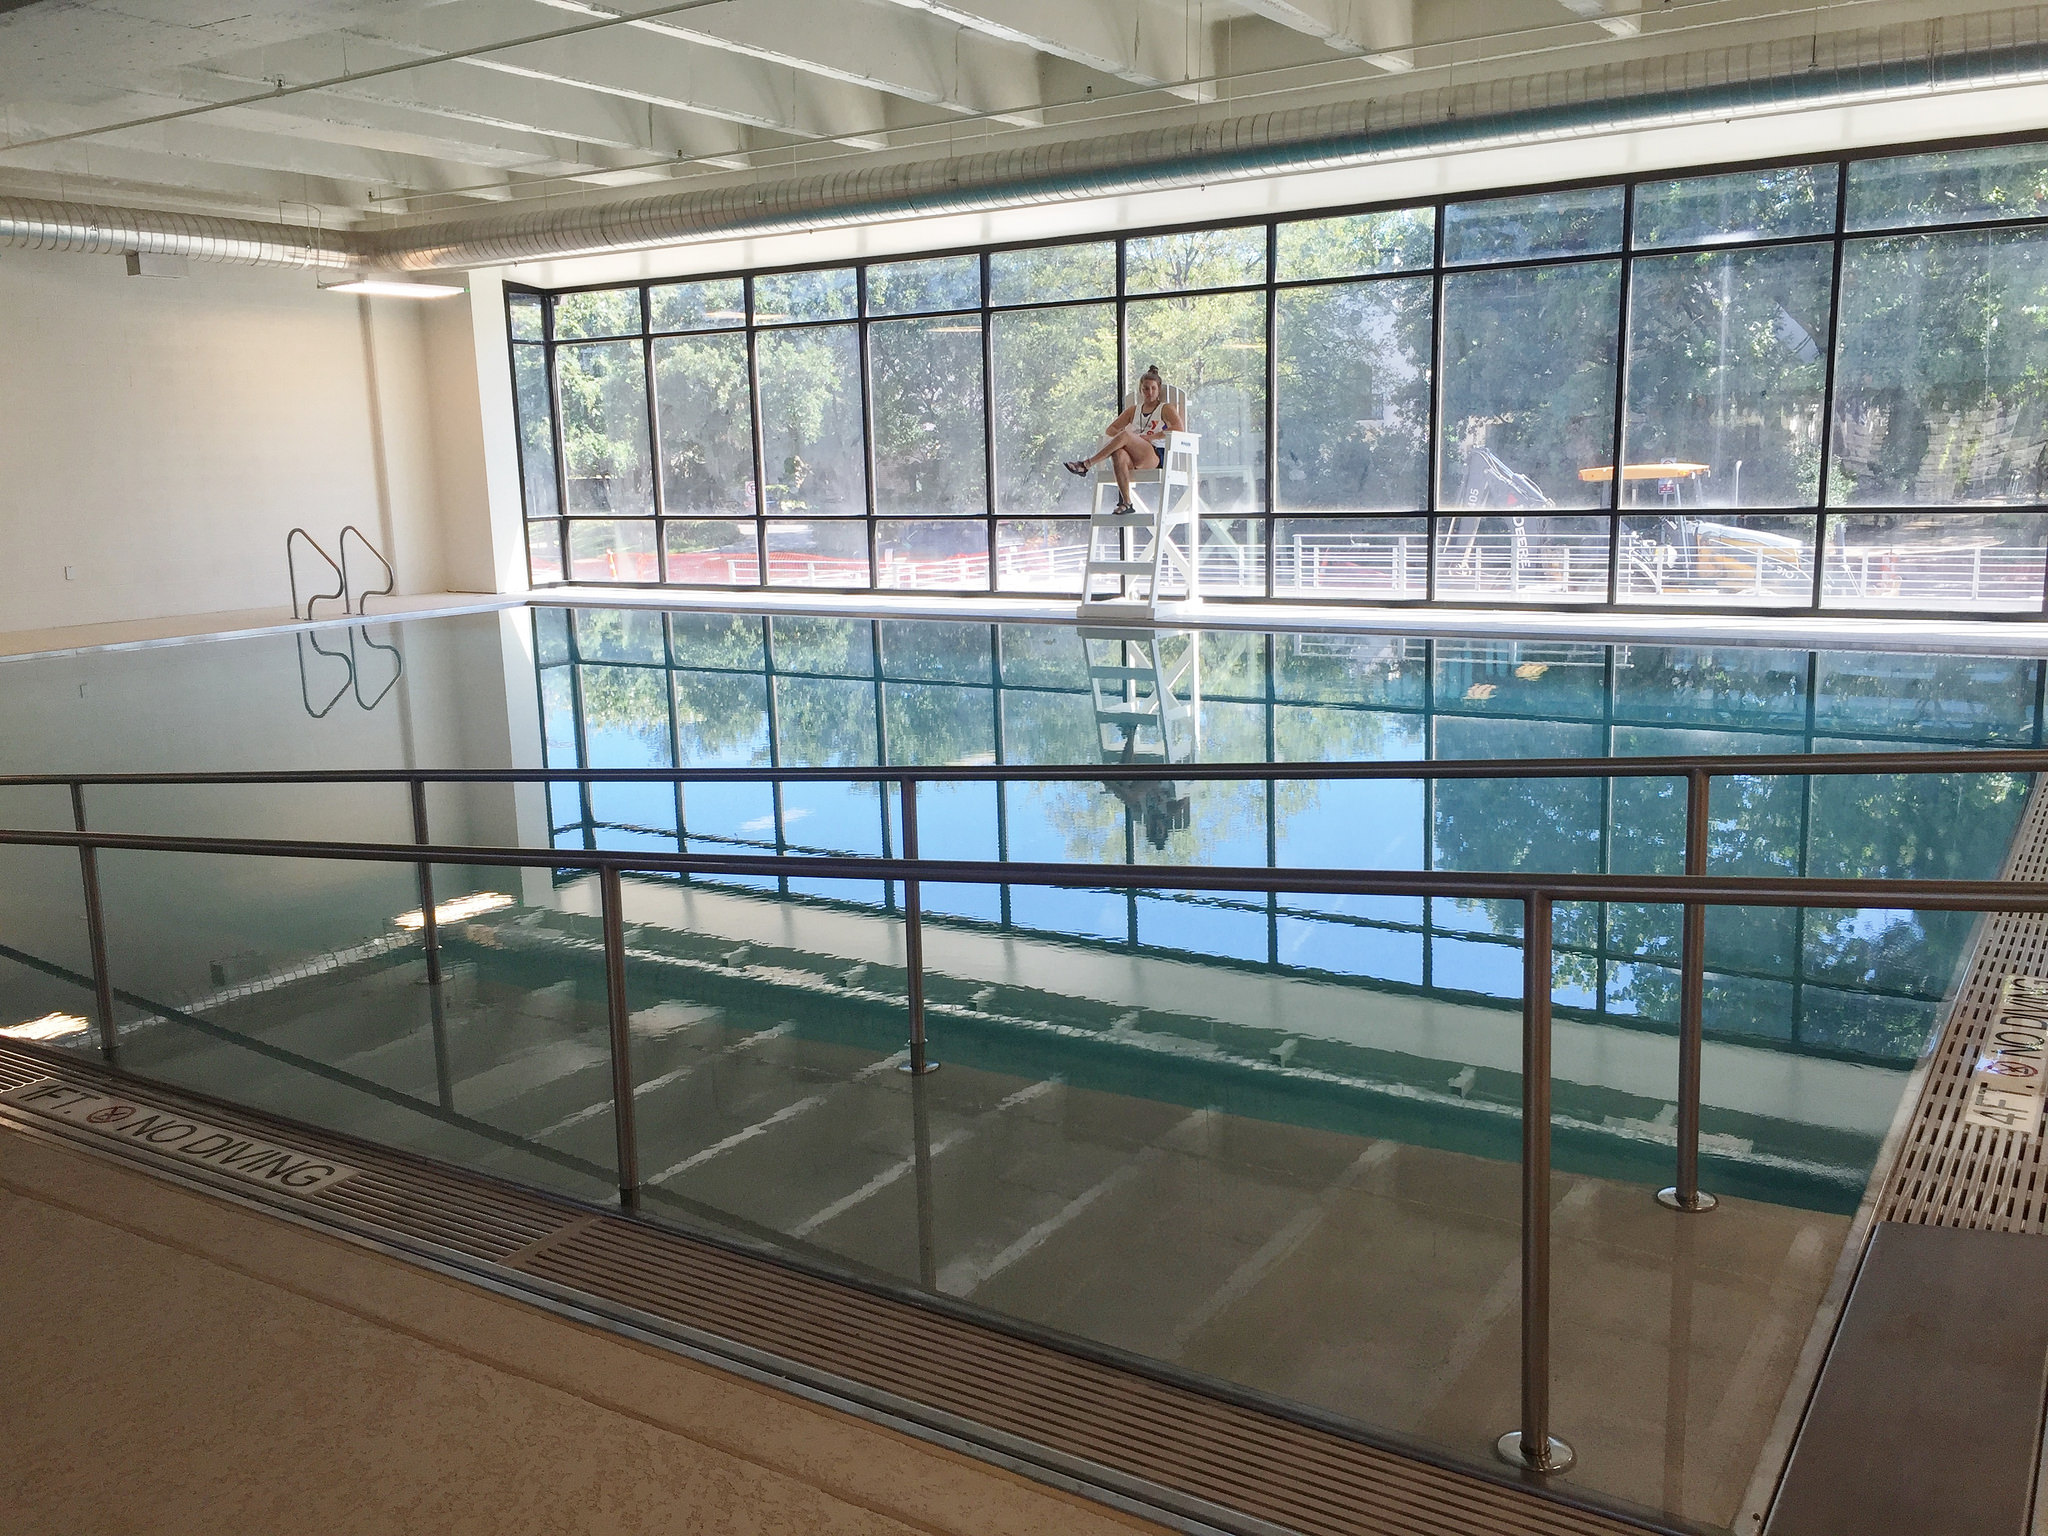 The Seay Natatorium houses a 25-lane pool and a therapy pool.